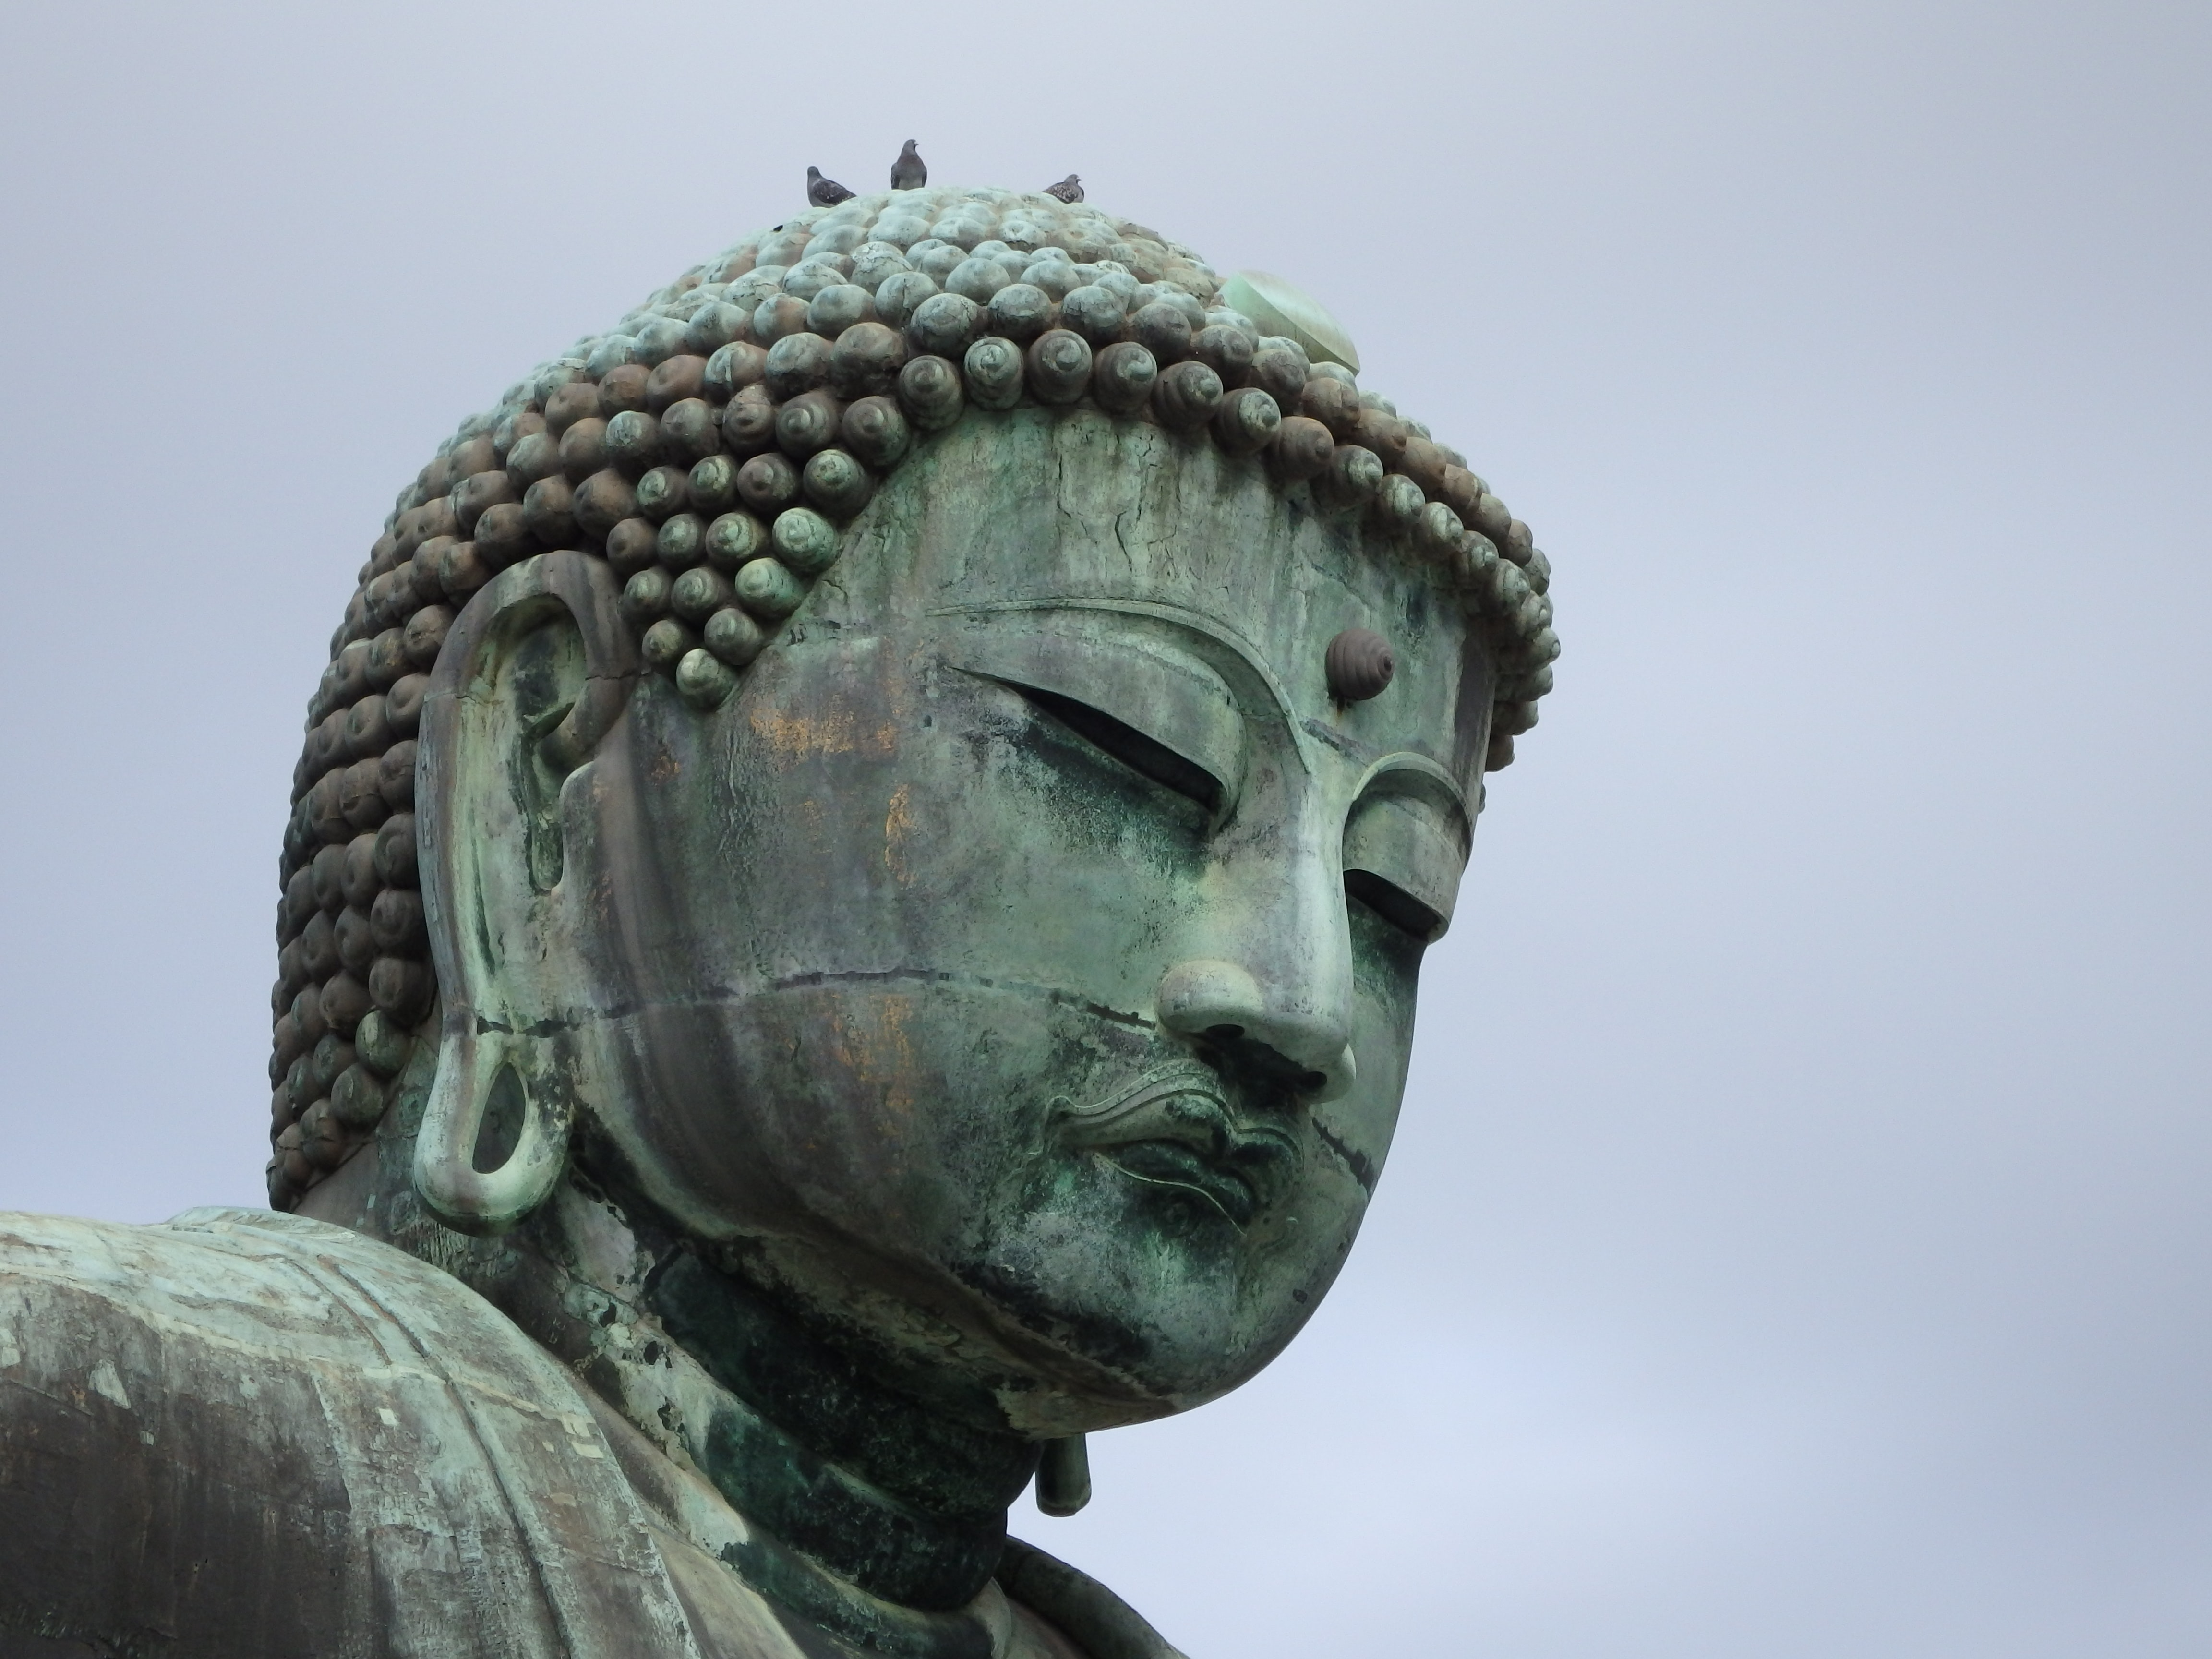 A large statue at a Buddhist temple.